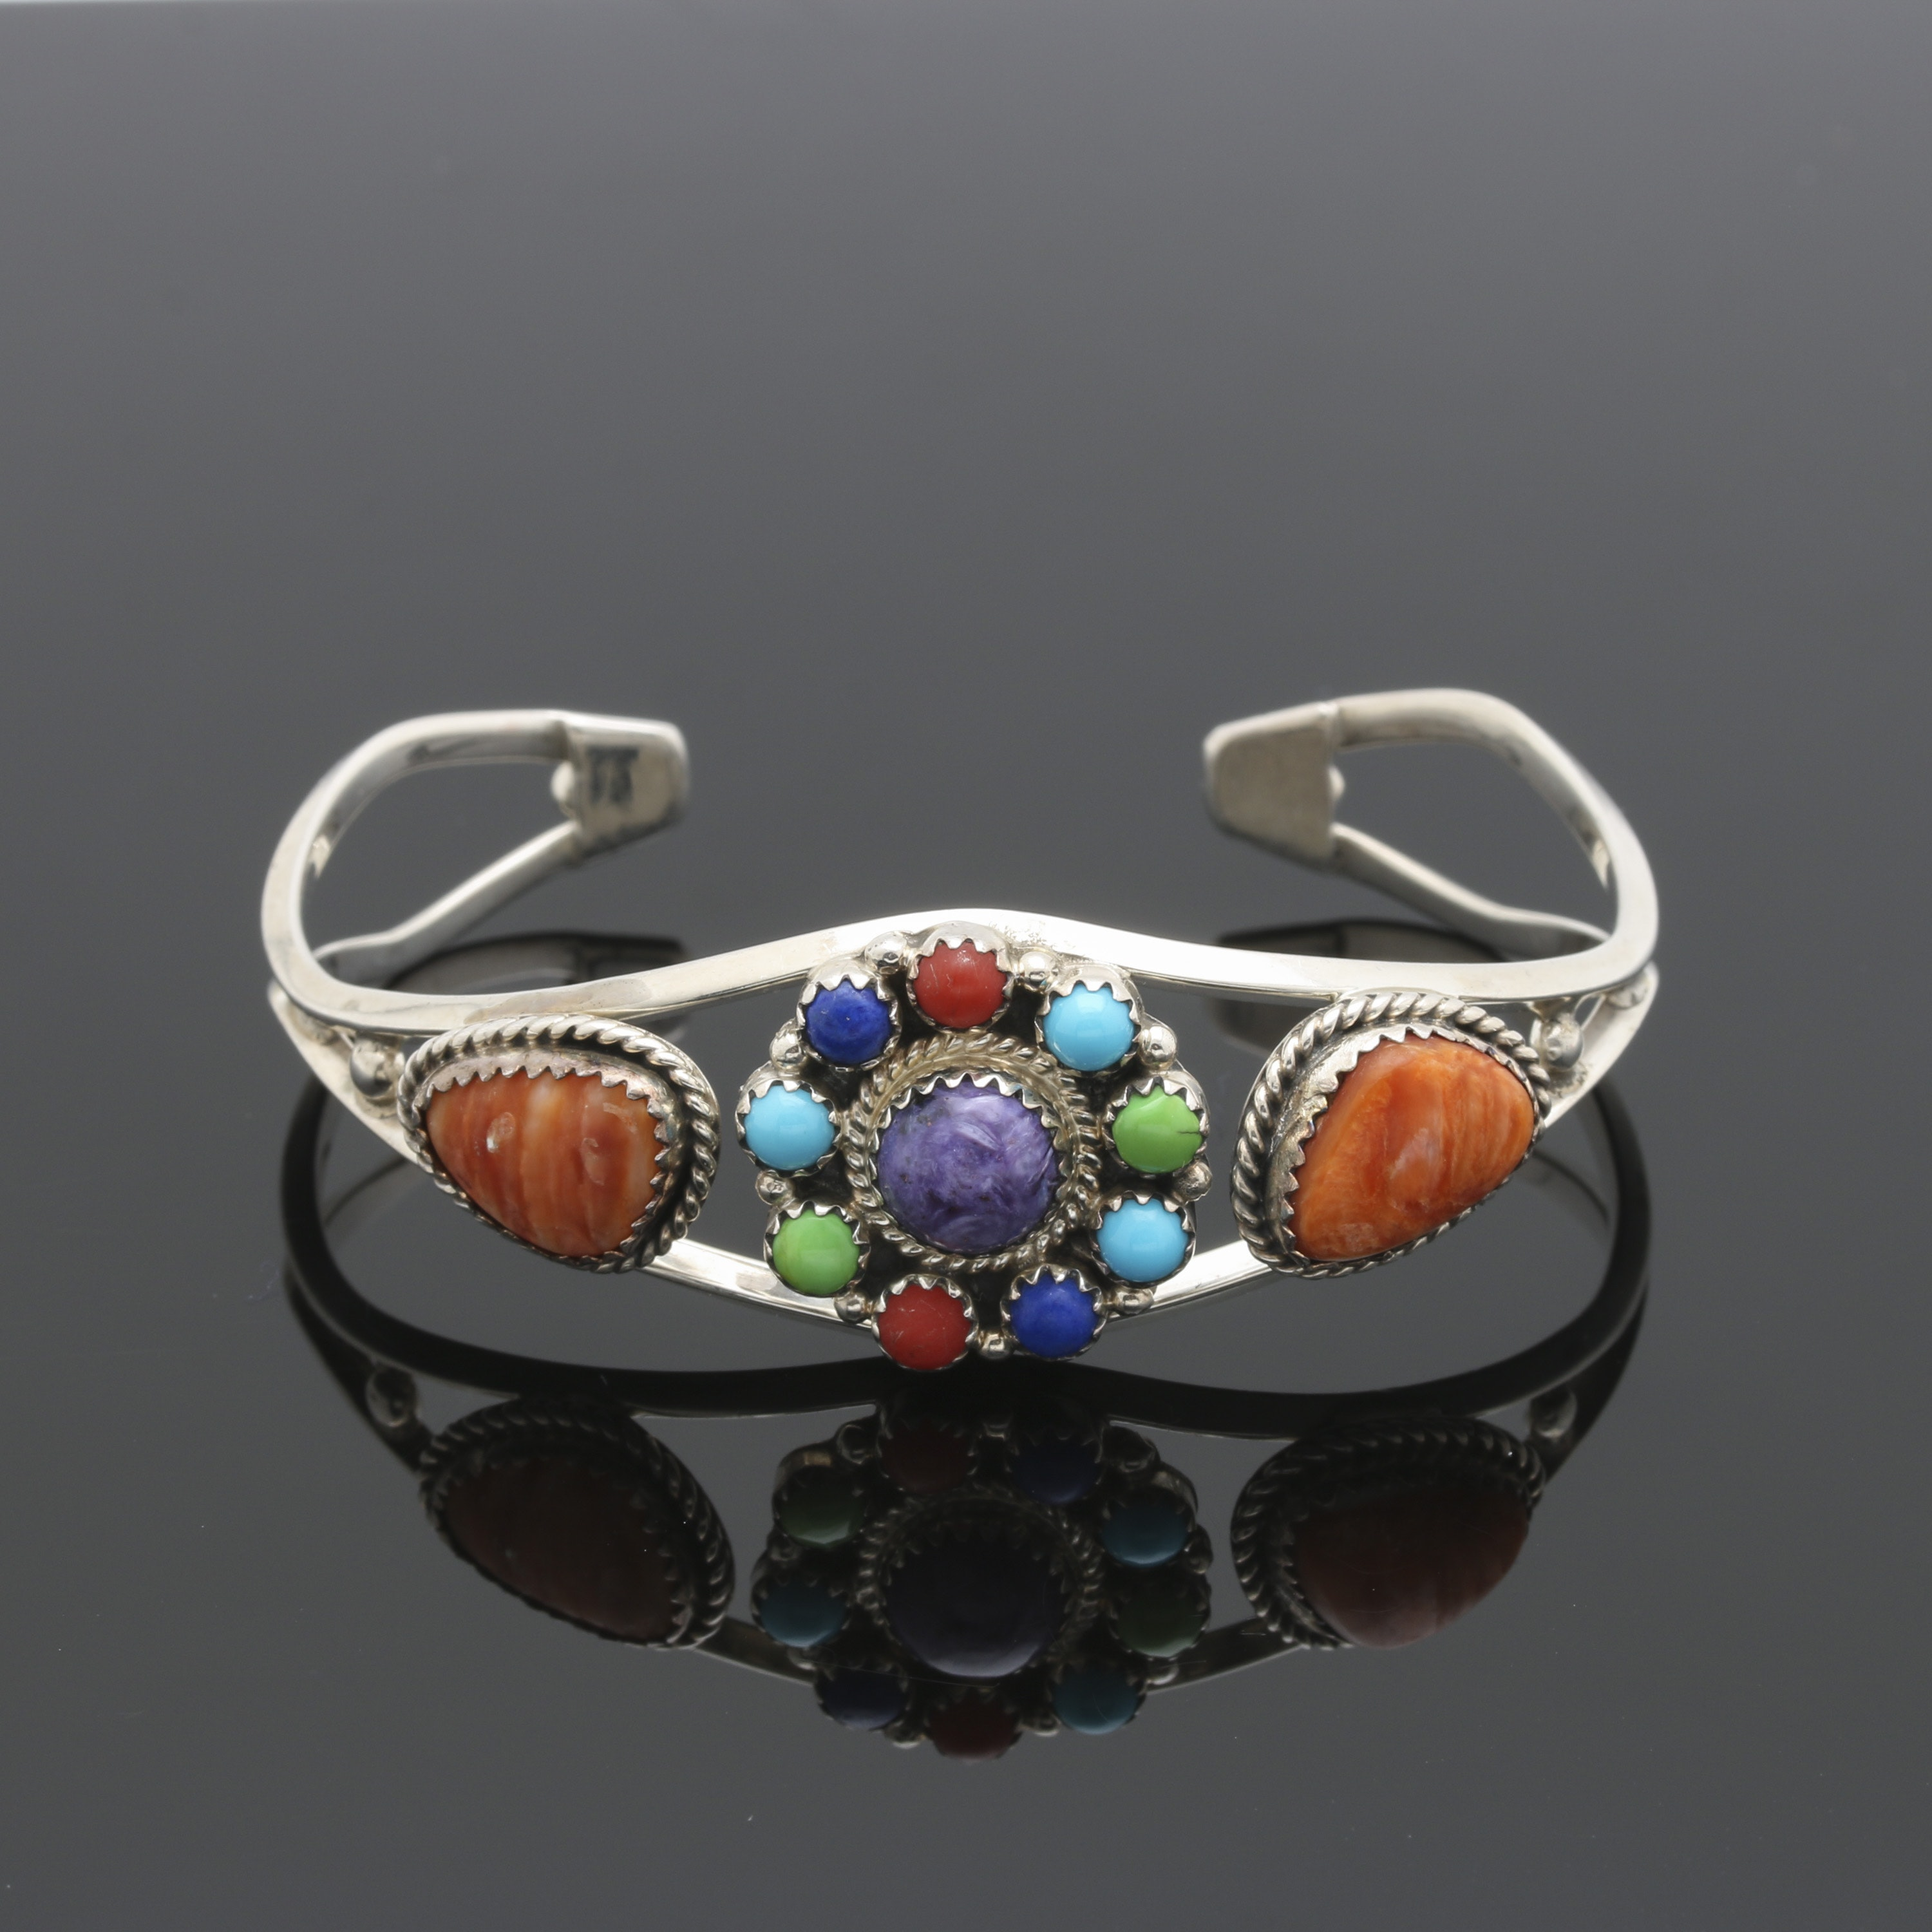 Running Bear Trading Co. Sterling Silver Stone Cuff Bracelet With Spiny Oyster